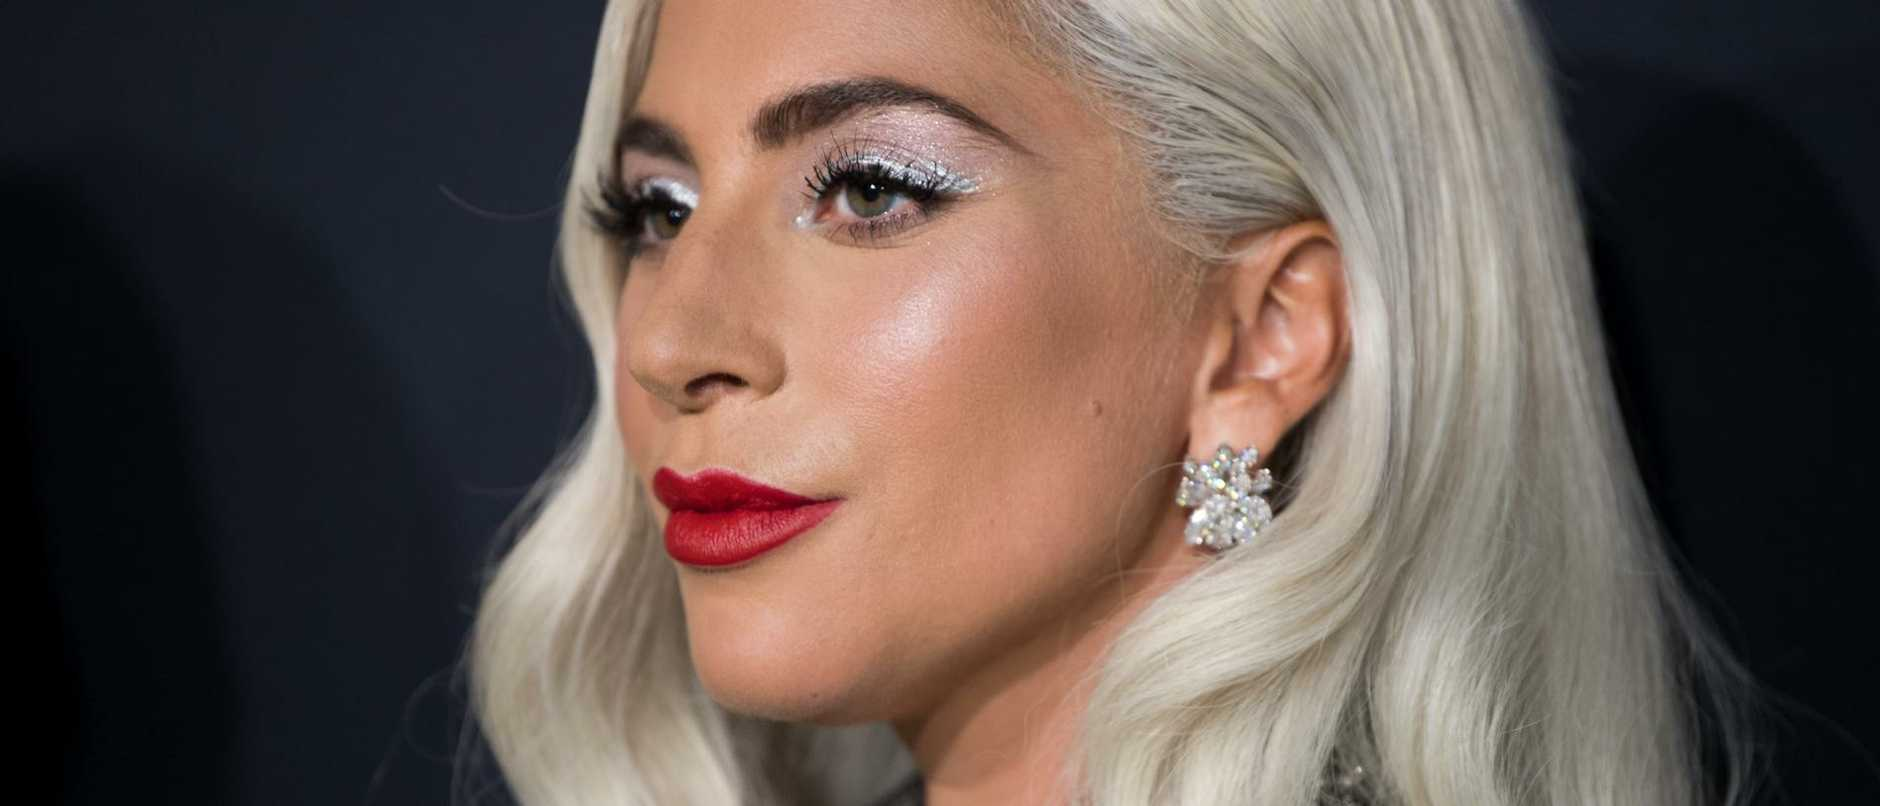 Police have released new details related to a shocking attack that ended with a dog walker shot and Lady Gaga's beloved pets stolen.